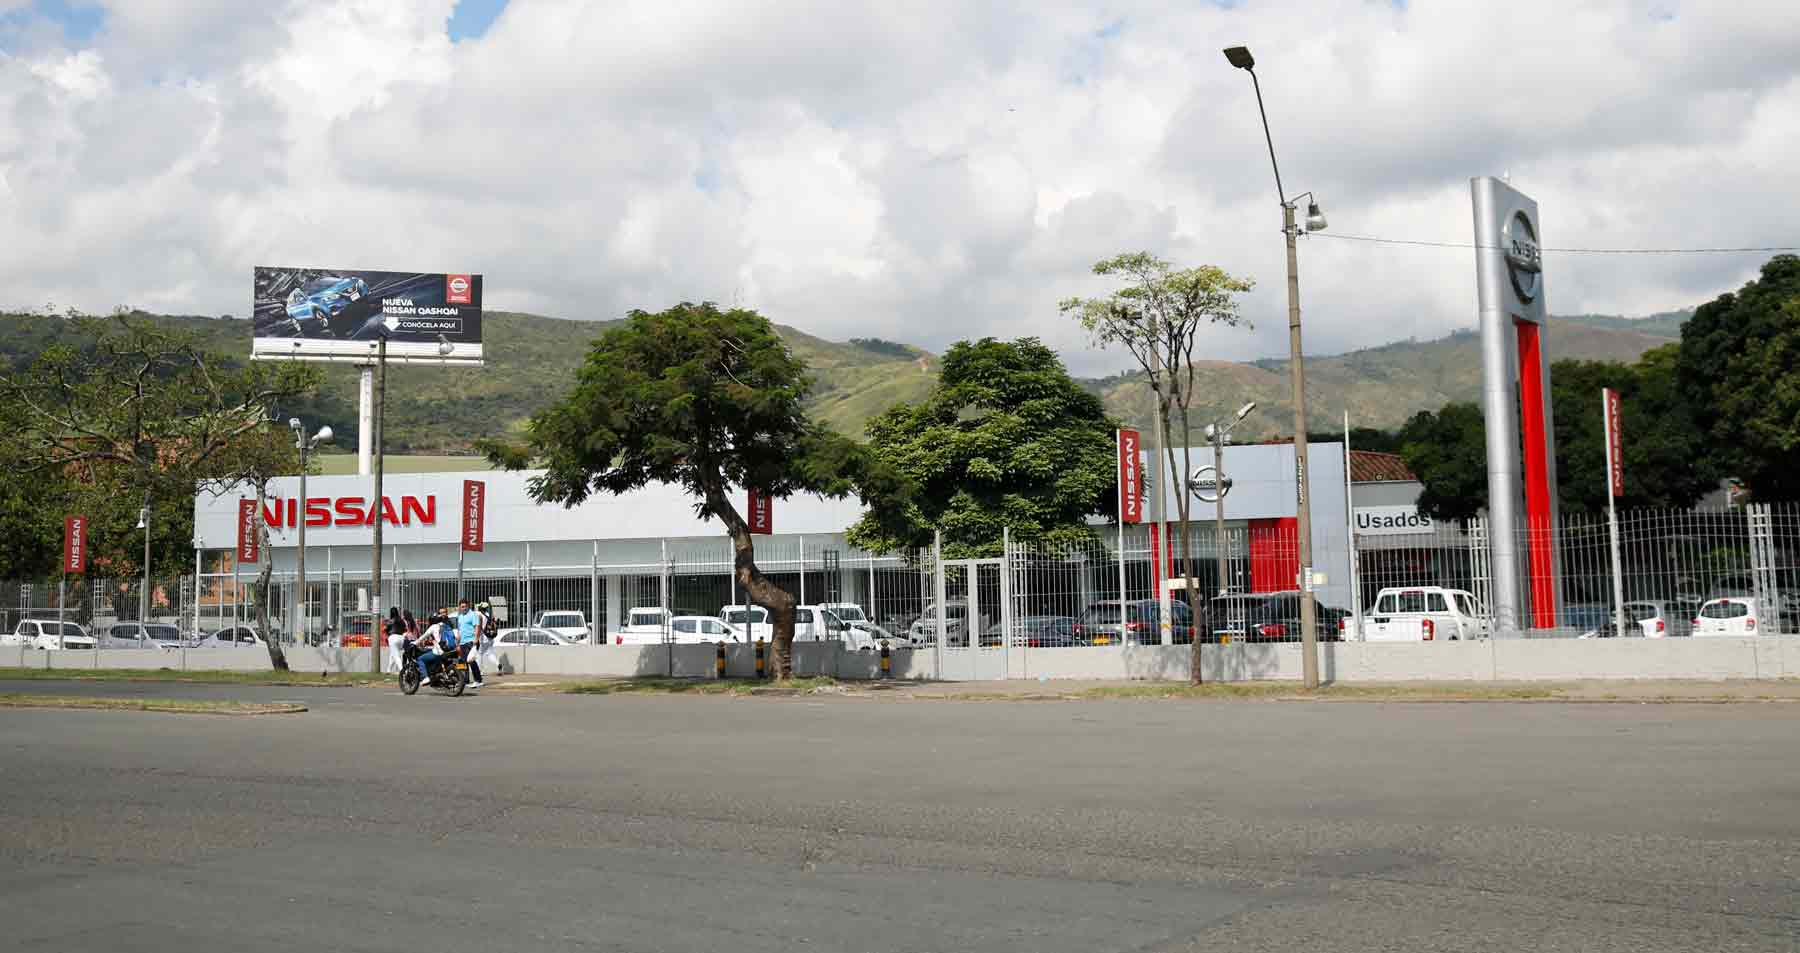 Dinissan Nissan cali pasoancho